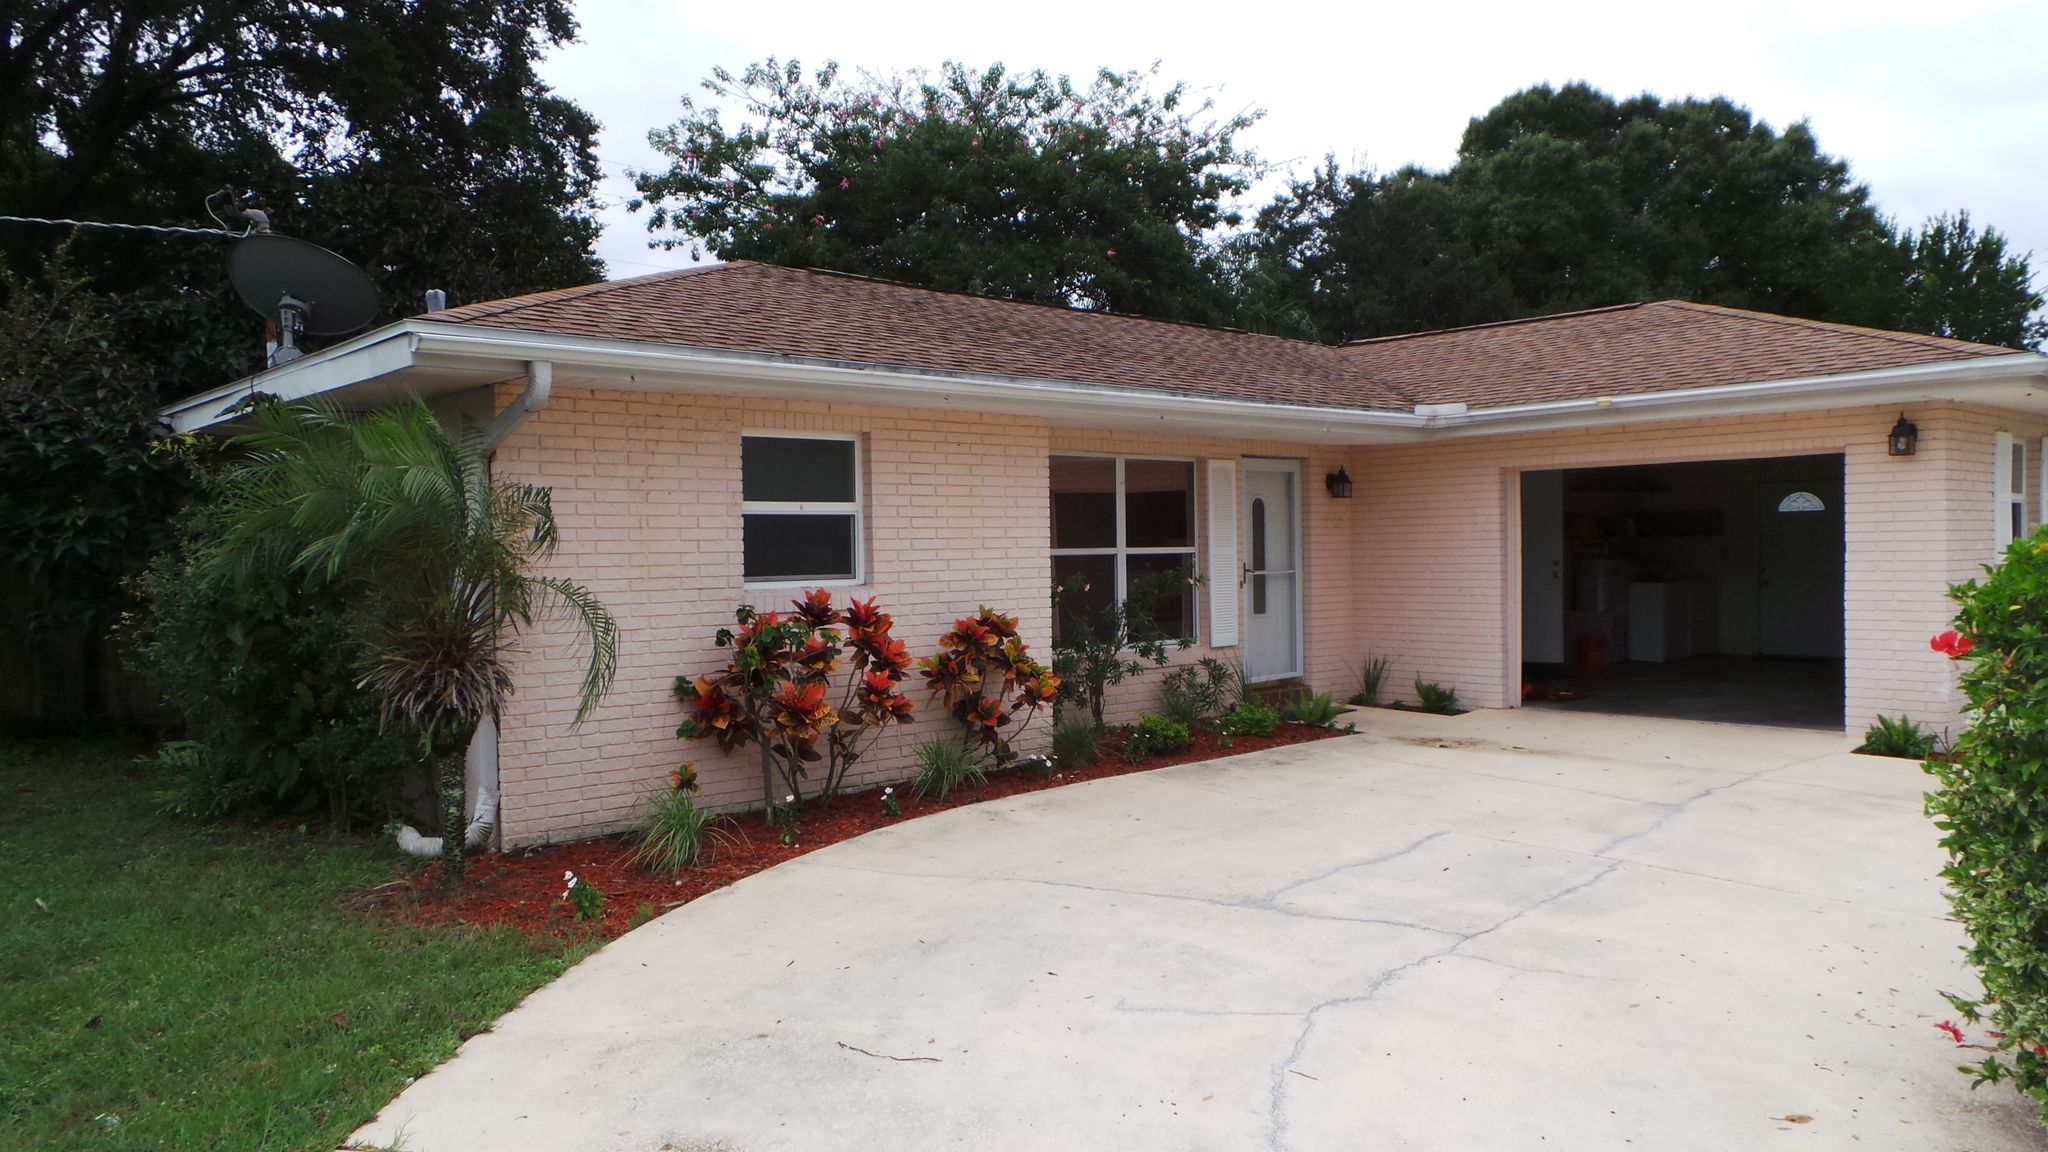 216 paine dr winter haven fl 33884 estimate and home details